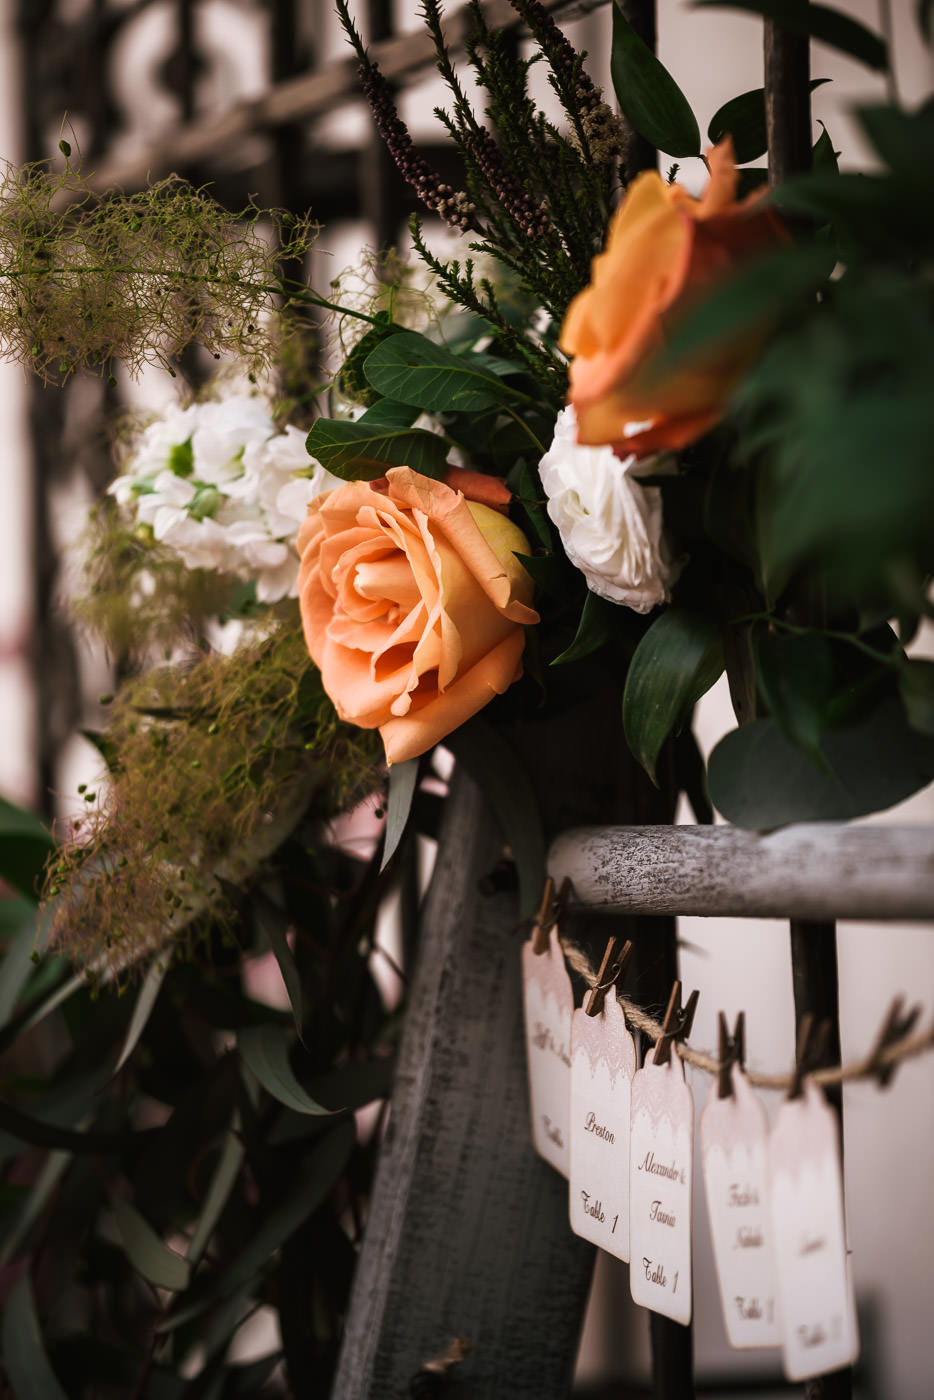 Peach colored roses wedding decor.